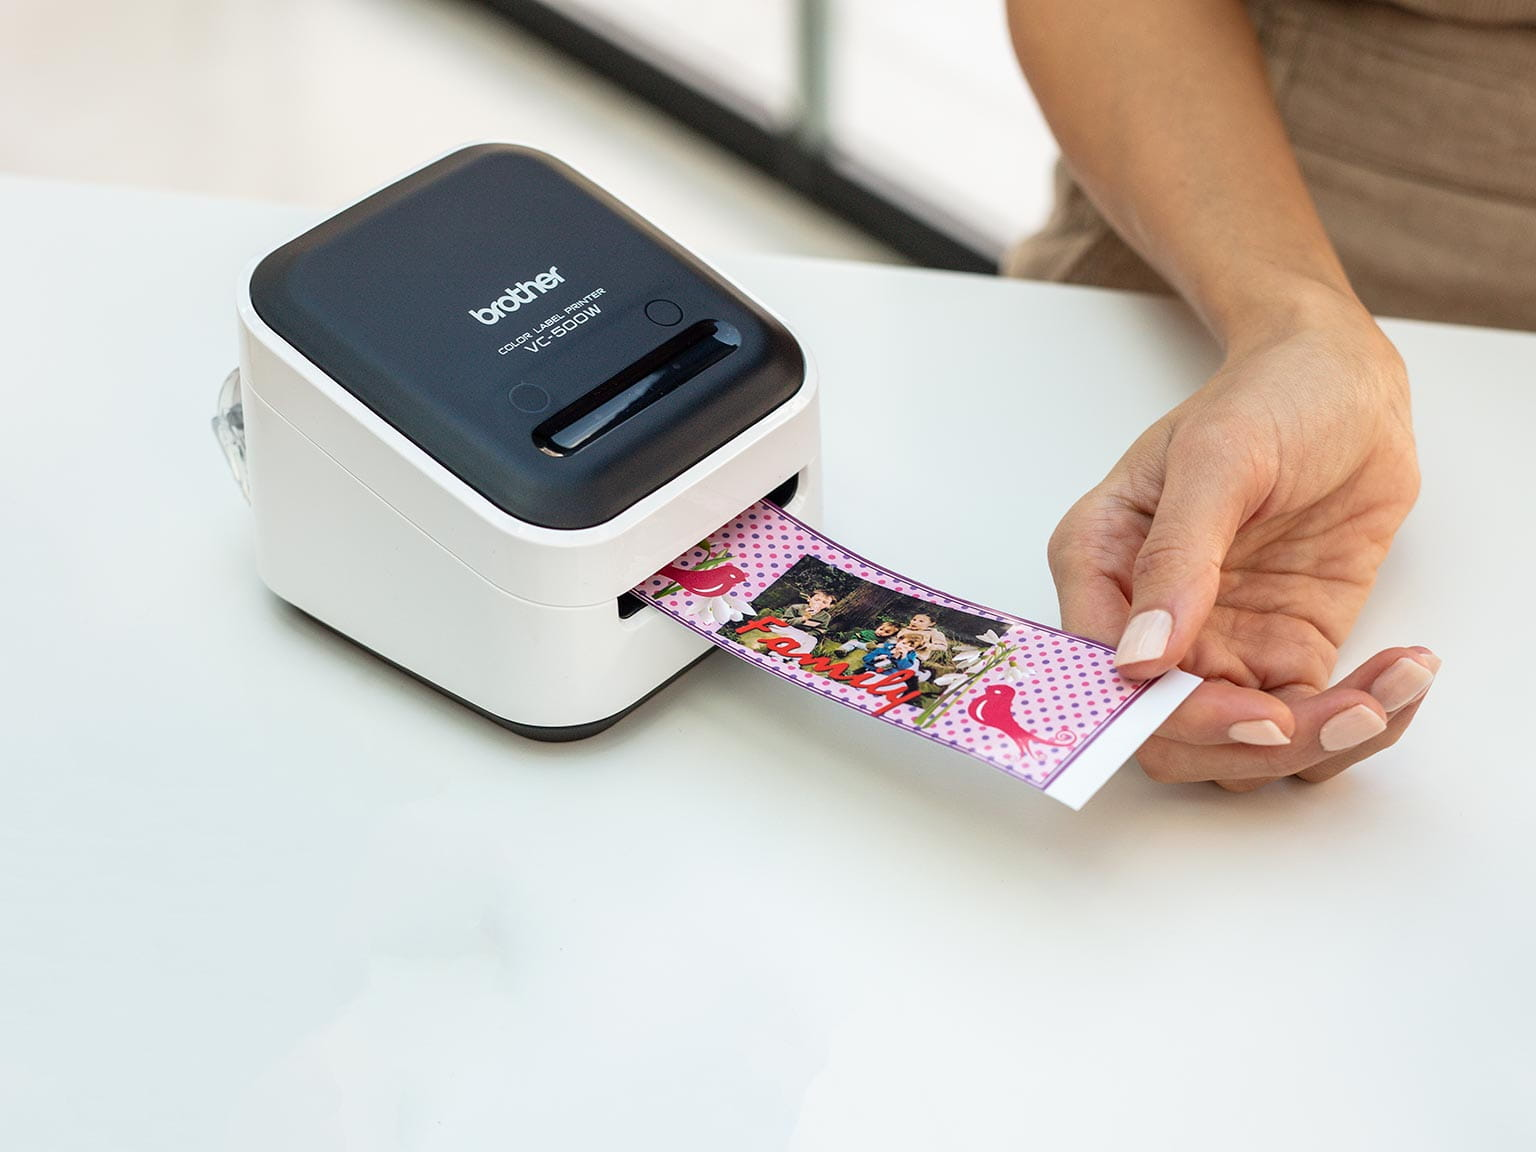 Brother colour label printer printing a wide label including clip art and photograph